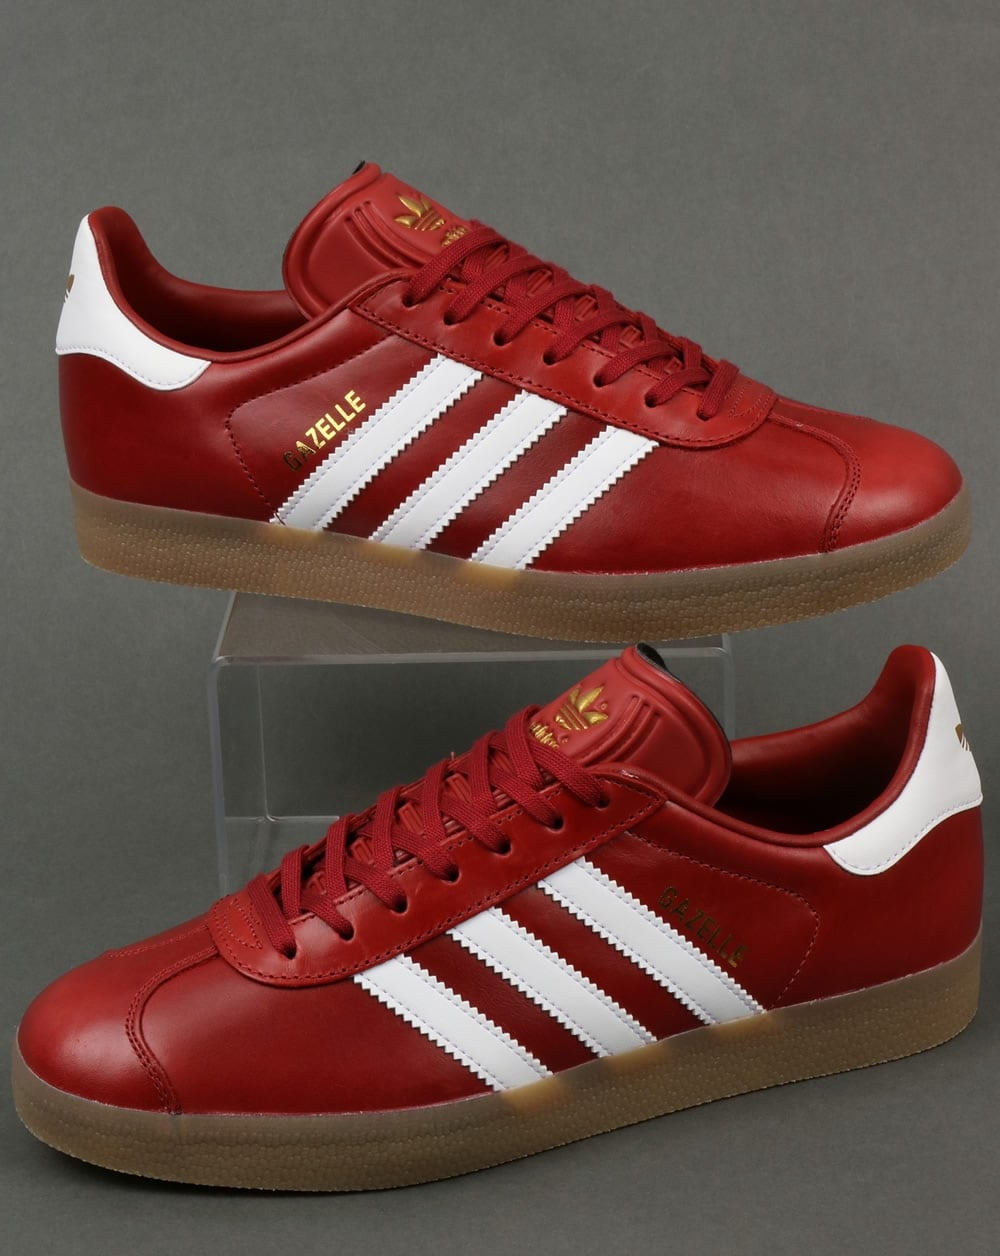 adidas Trainers Adidas Gazelle Leather Trainers Oxblood Red White gum 1512b52b9539